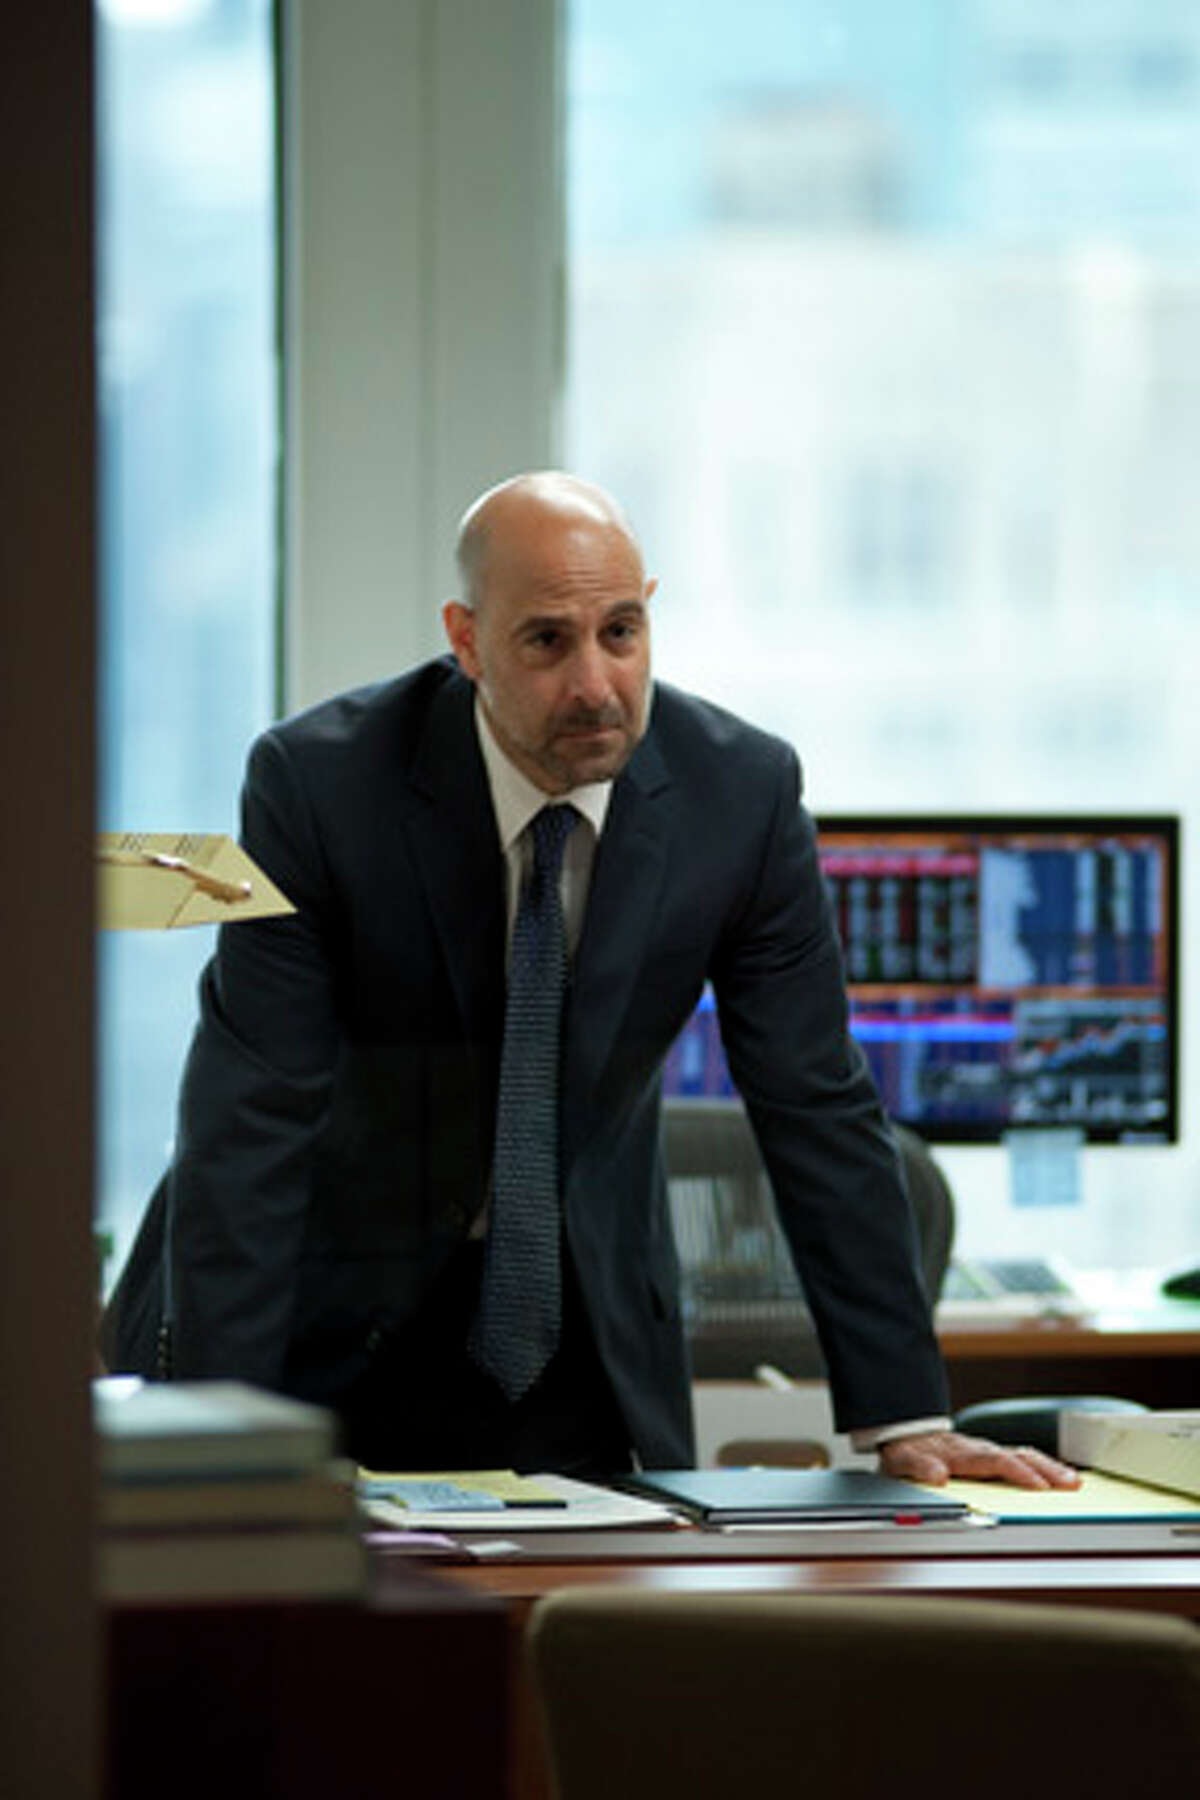 Stanley Tucci as Eric Dale in